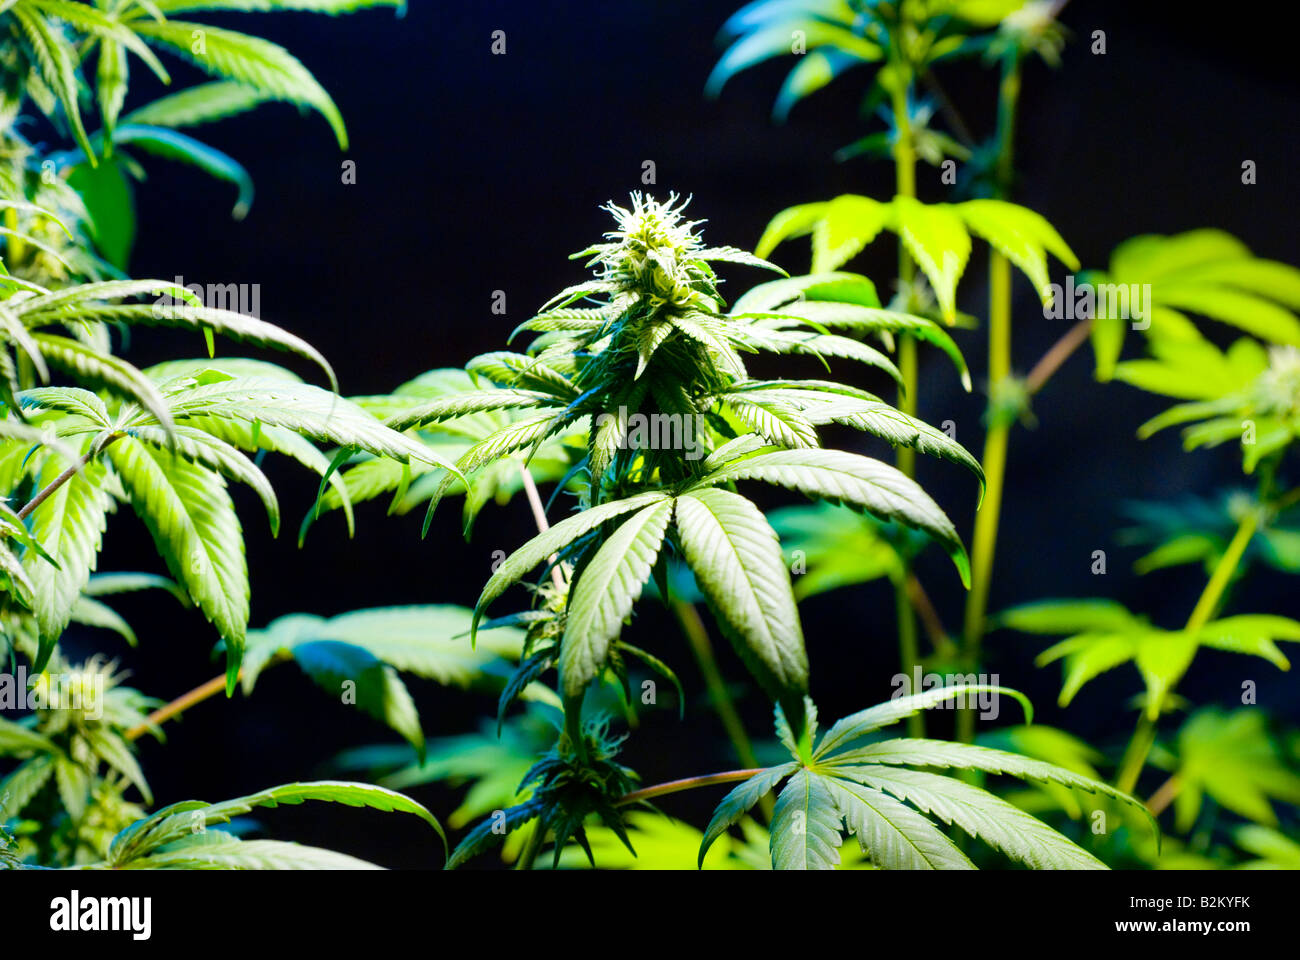 Illegal indoor Marijuana growing with budding pot plants - Stock Image